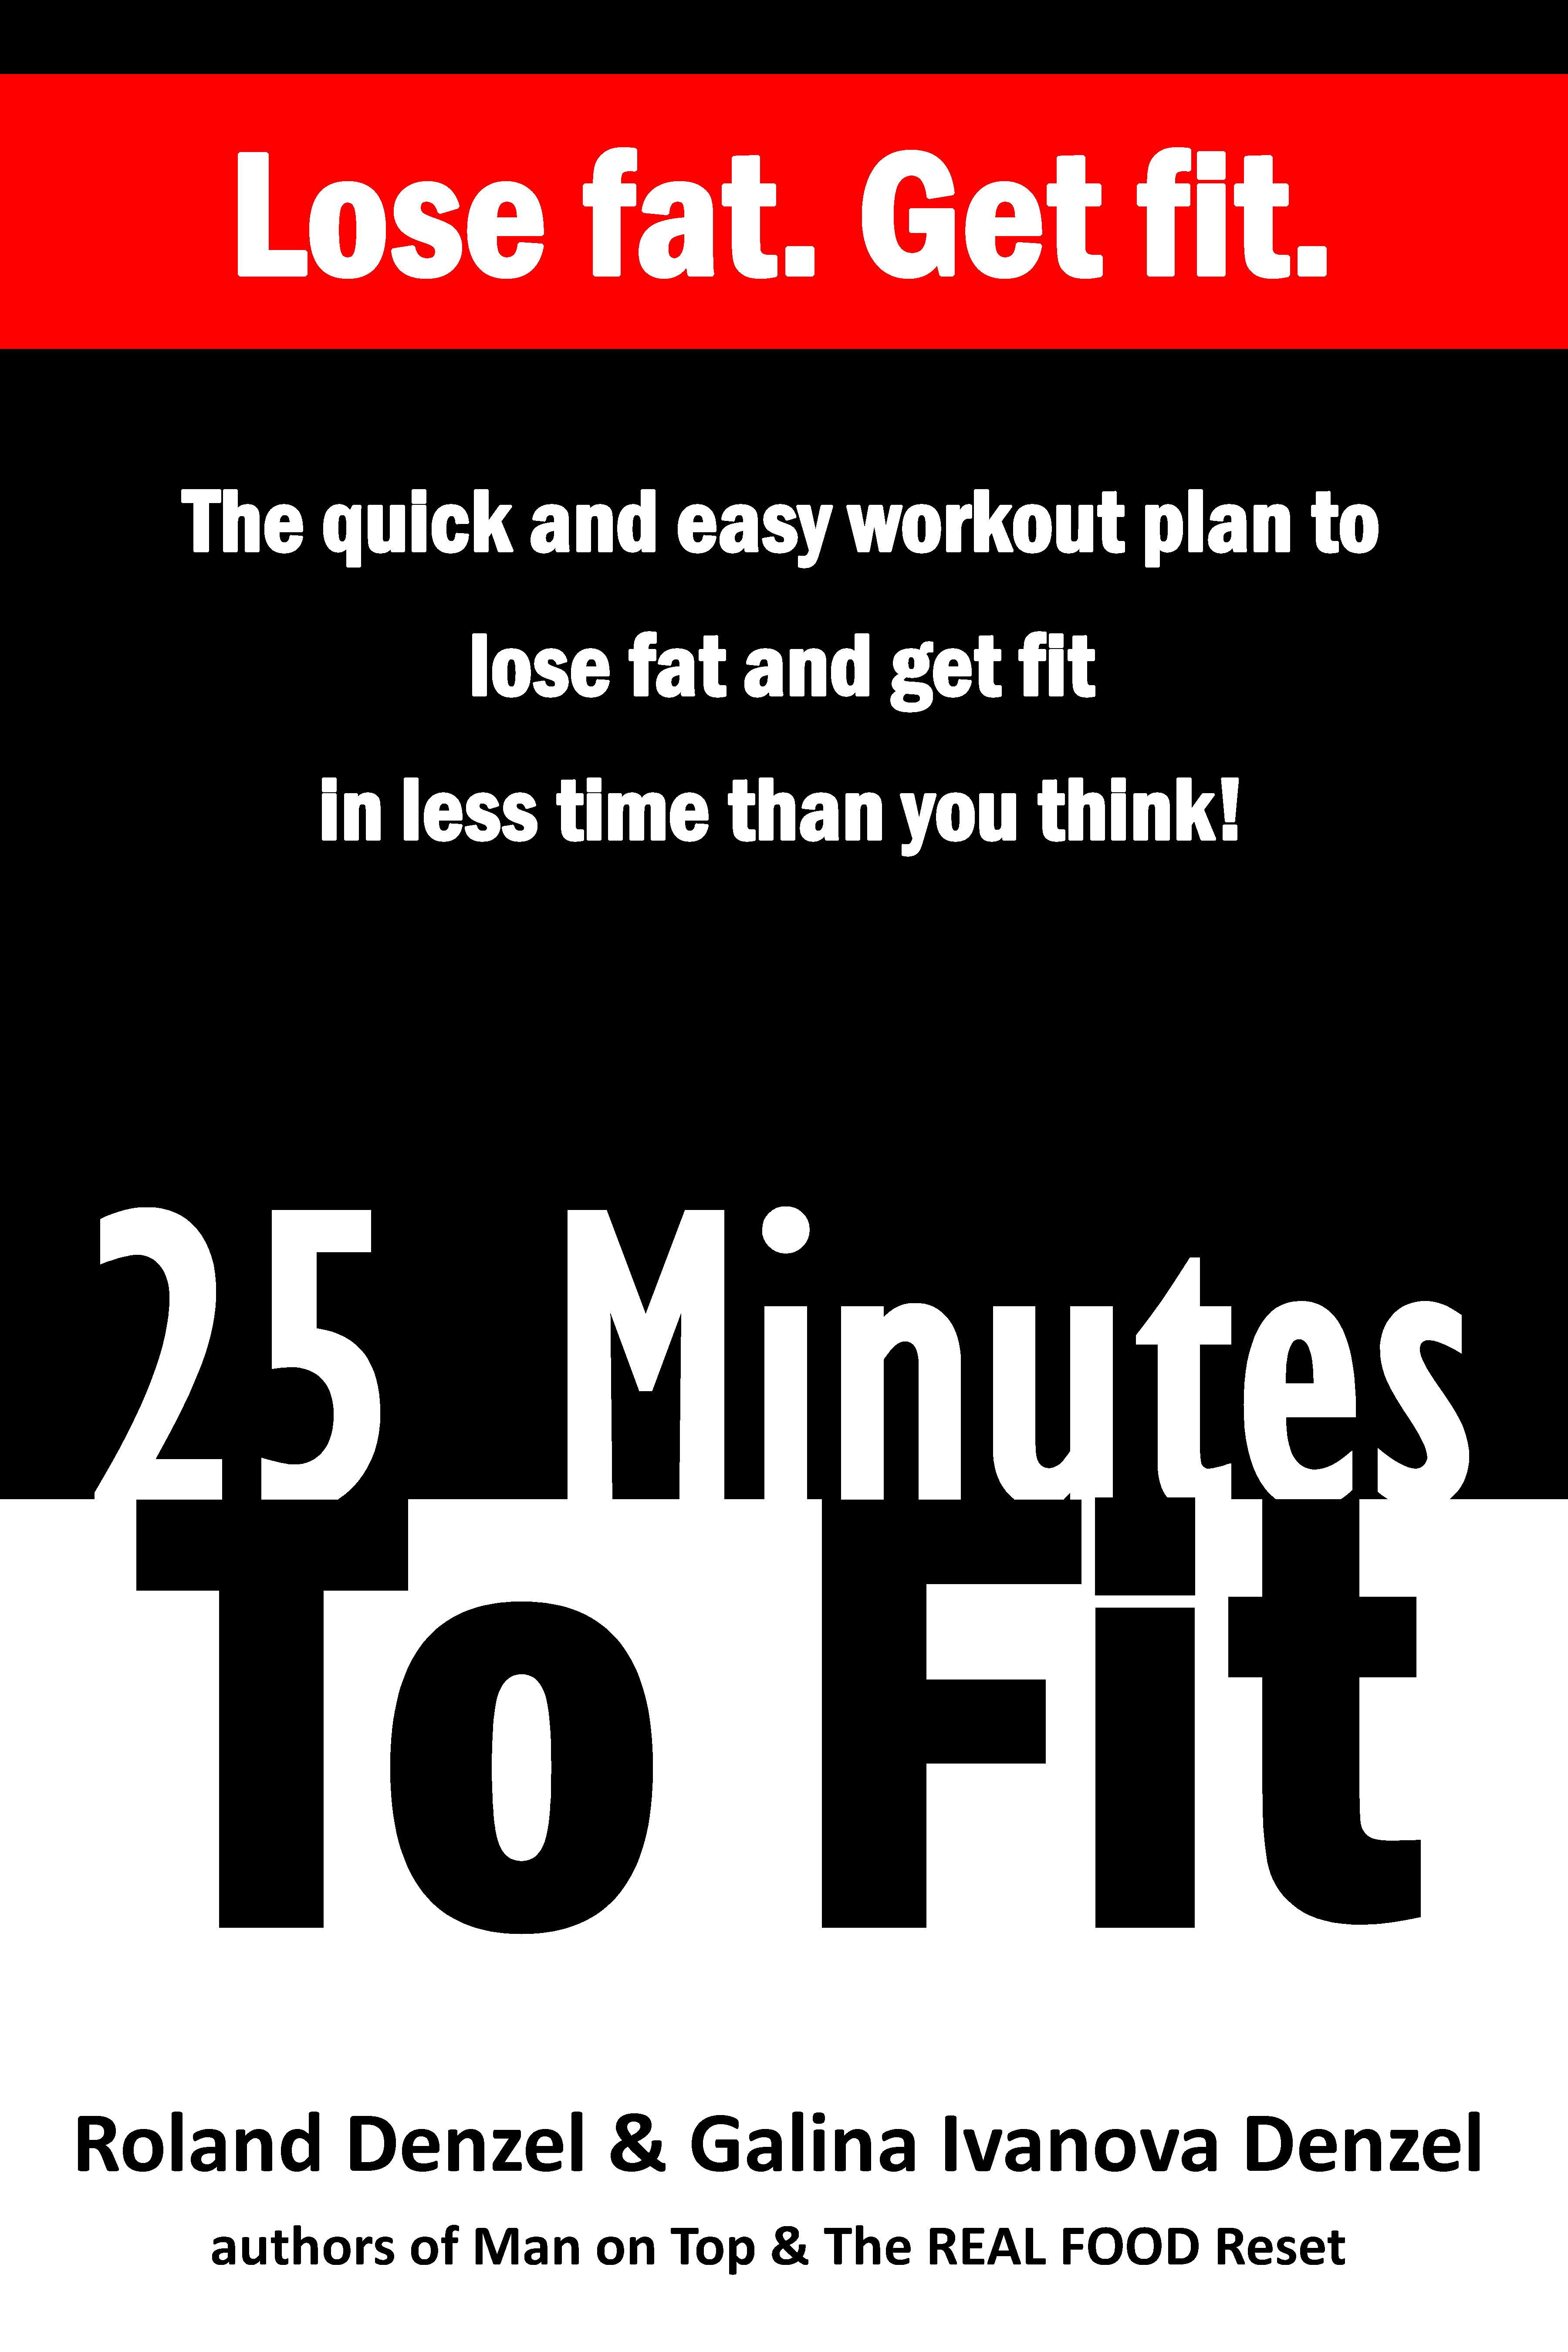 25 Minutes to Fit – The Quick & Sweaty Workout Plan to Get Lean in Less Time Than You Think!